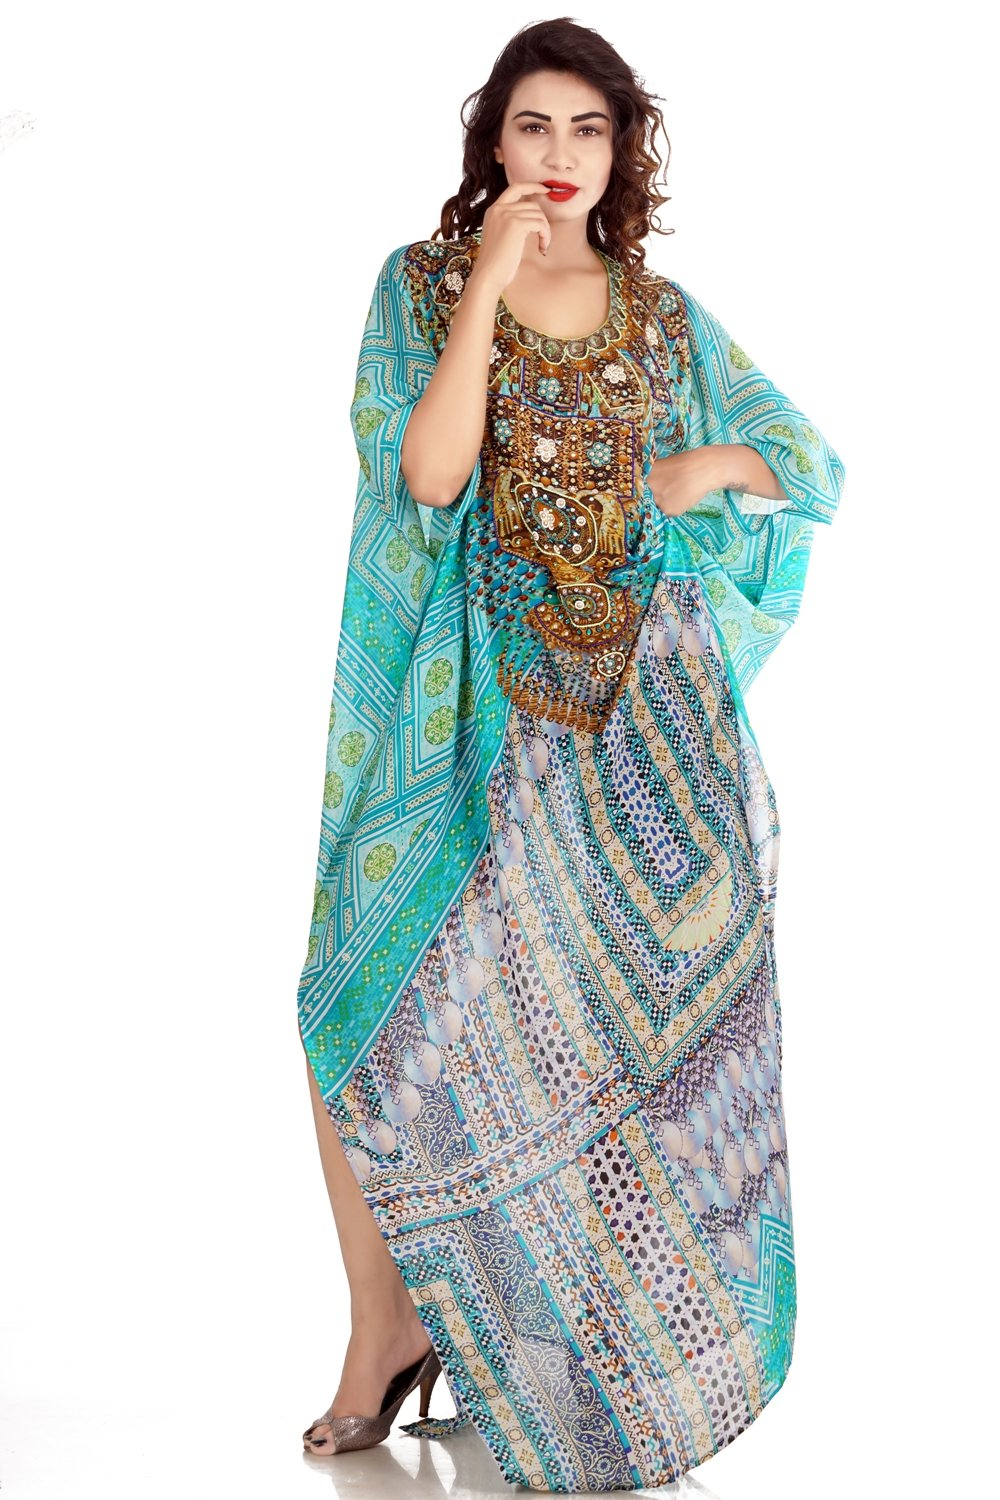 Glorious Traditional Coral Geometric Patterns Printed Full Length Beach pool party kaftan - Silk kaftan